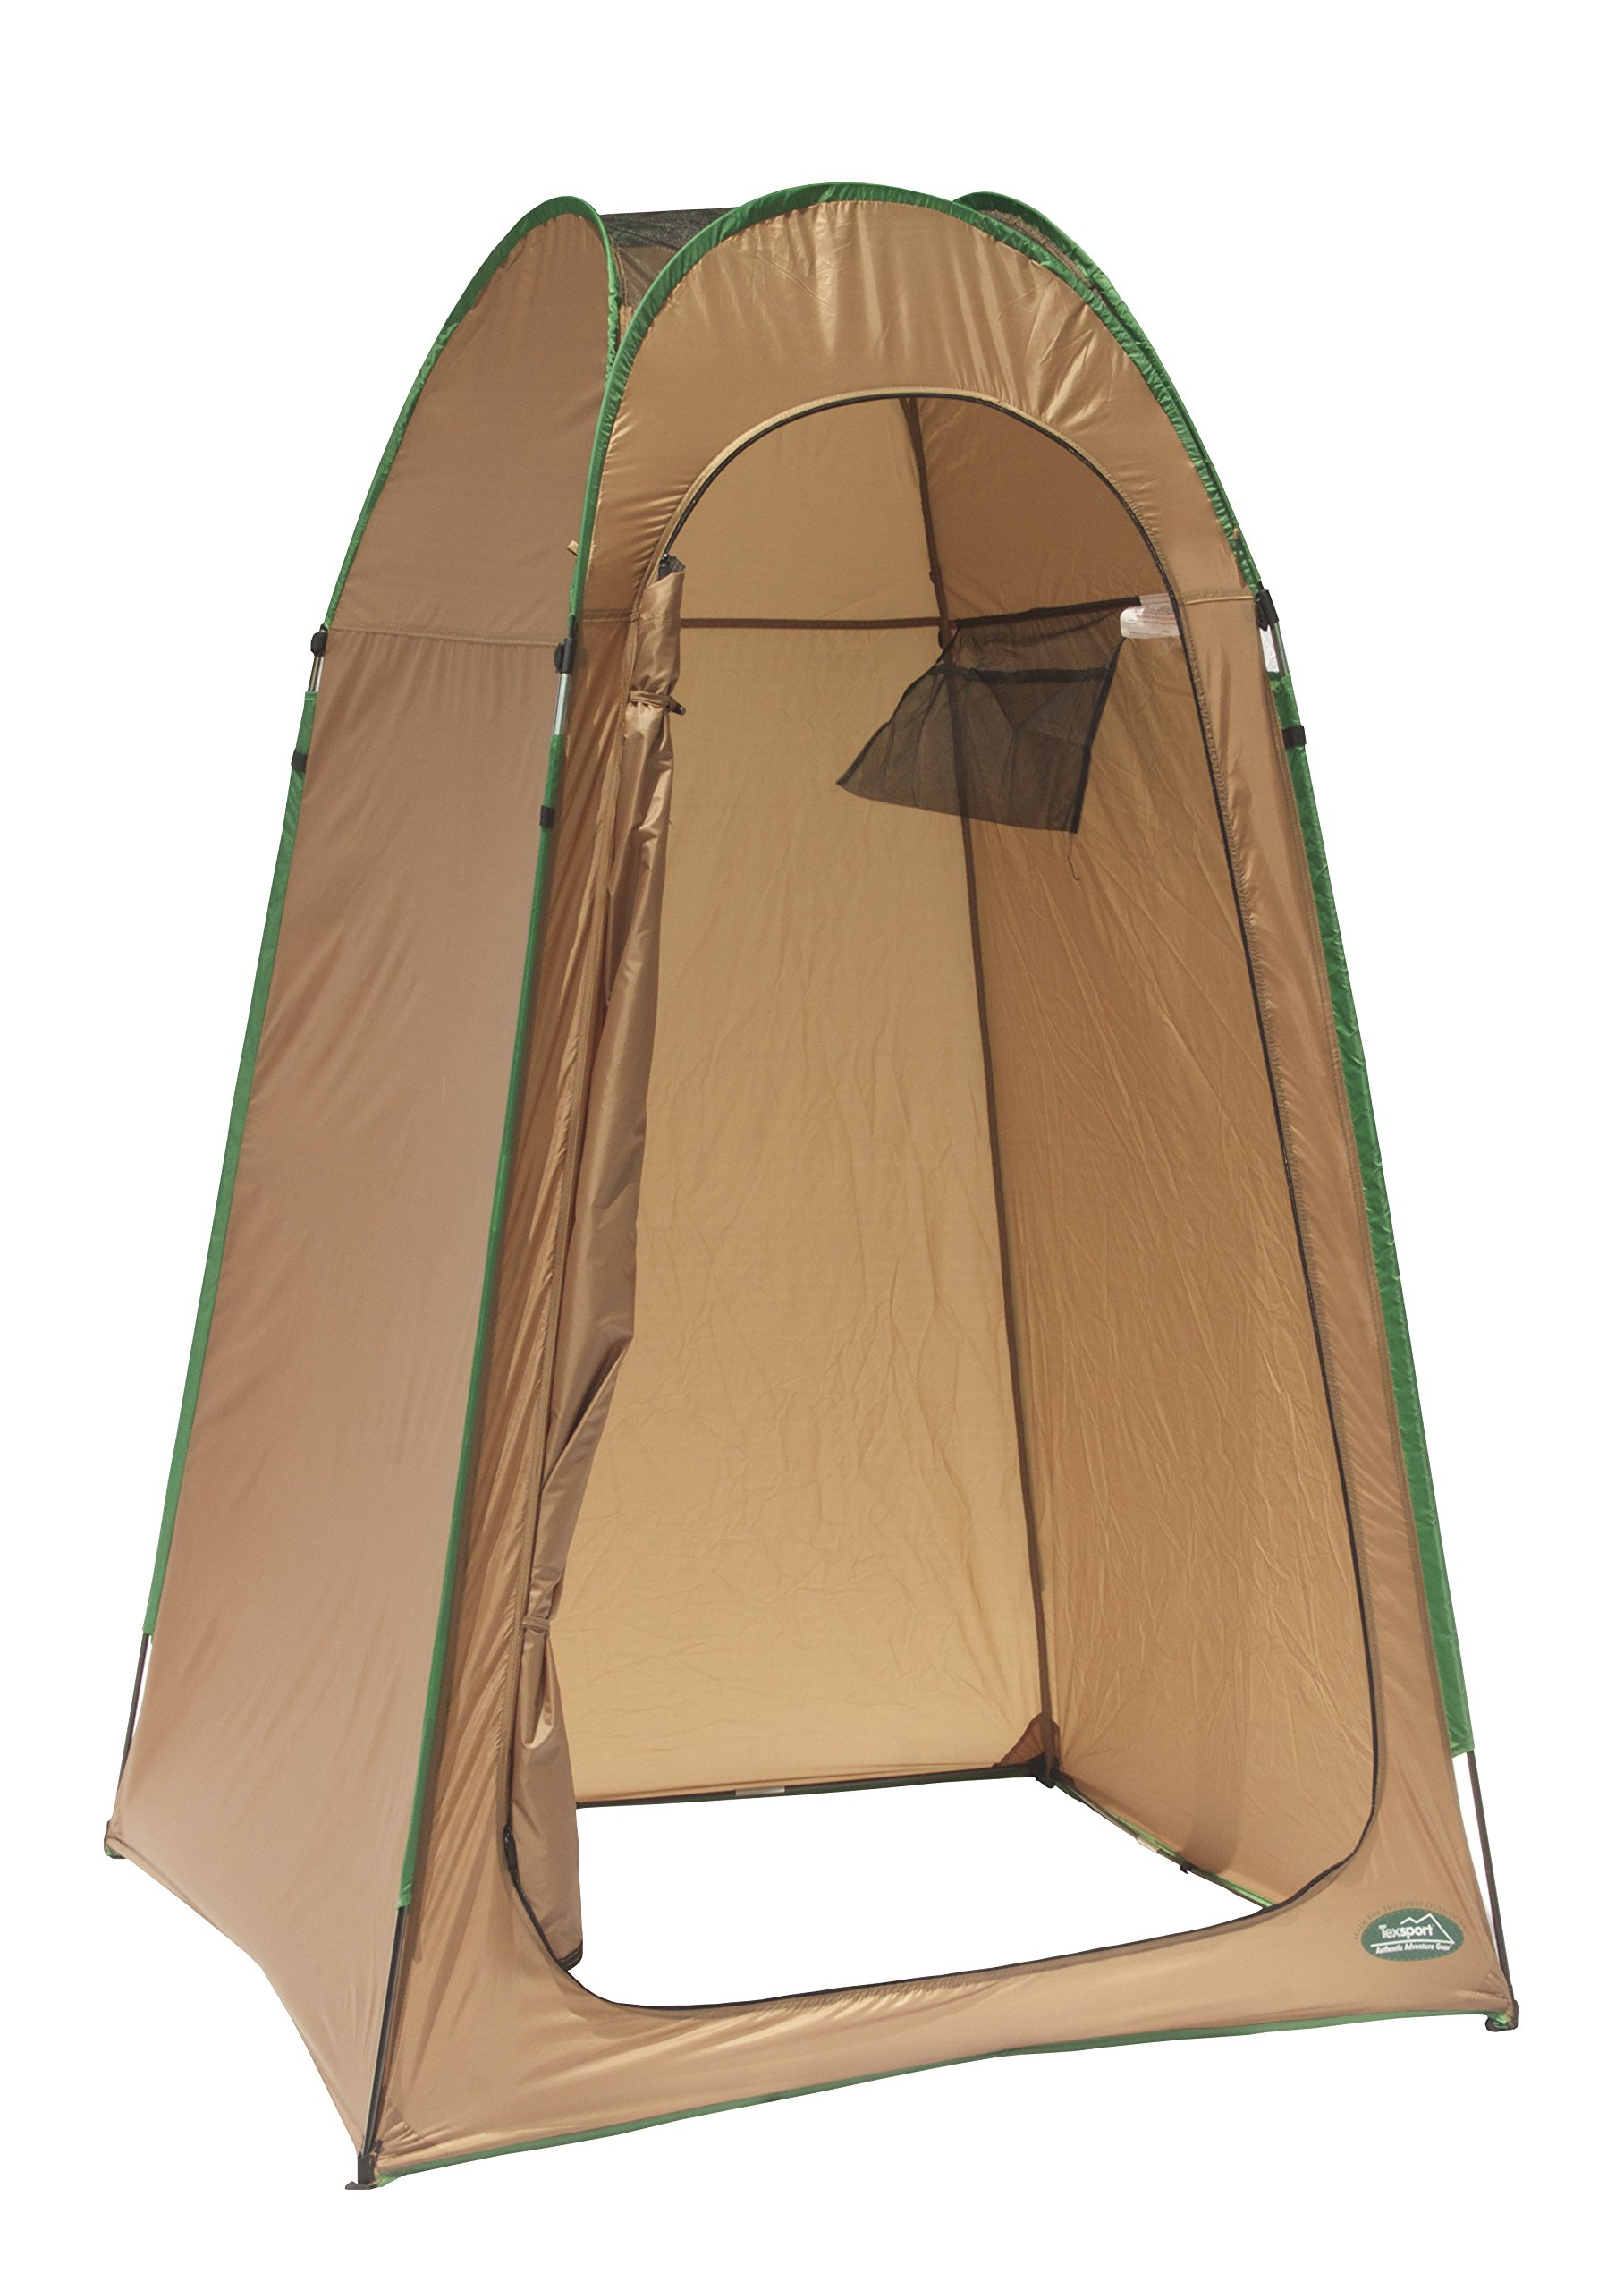 Texsport Hilo Hut II Portable Outdoor Changing Room Privacy Shelter by Texsport